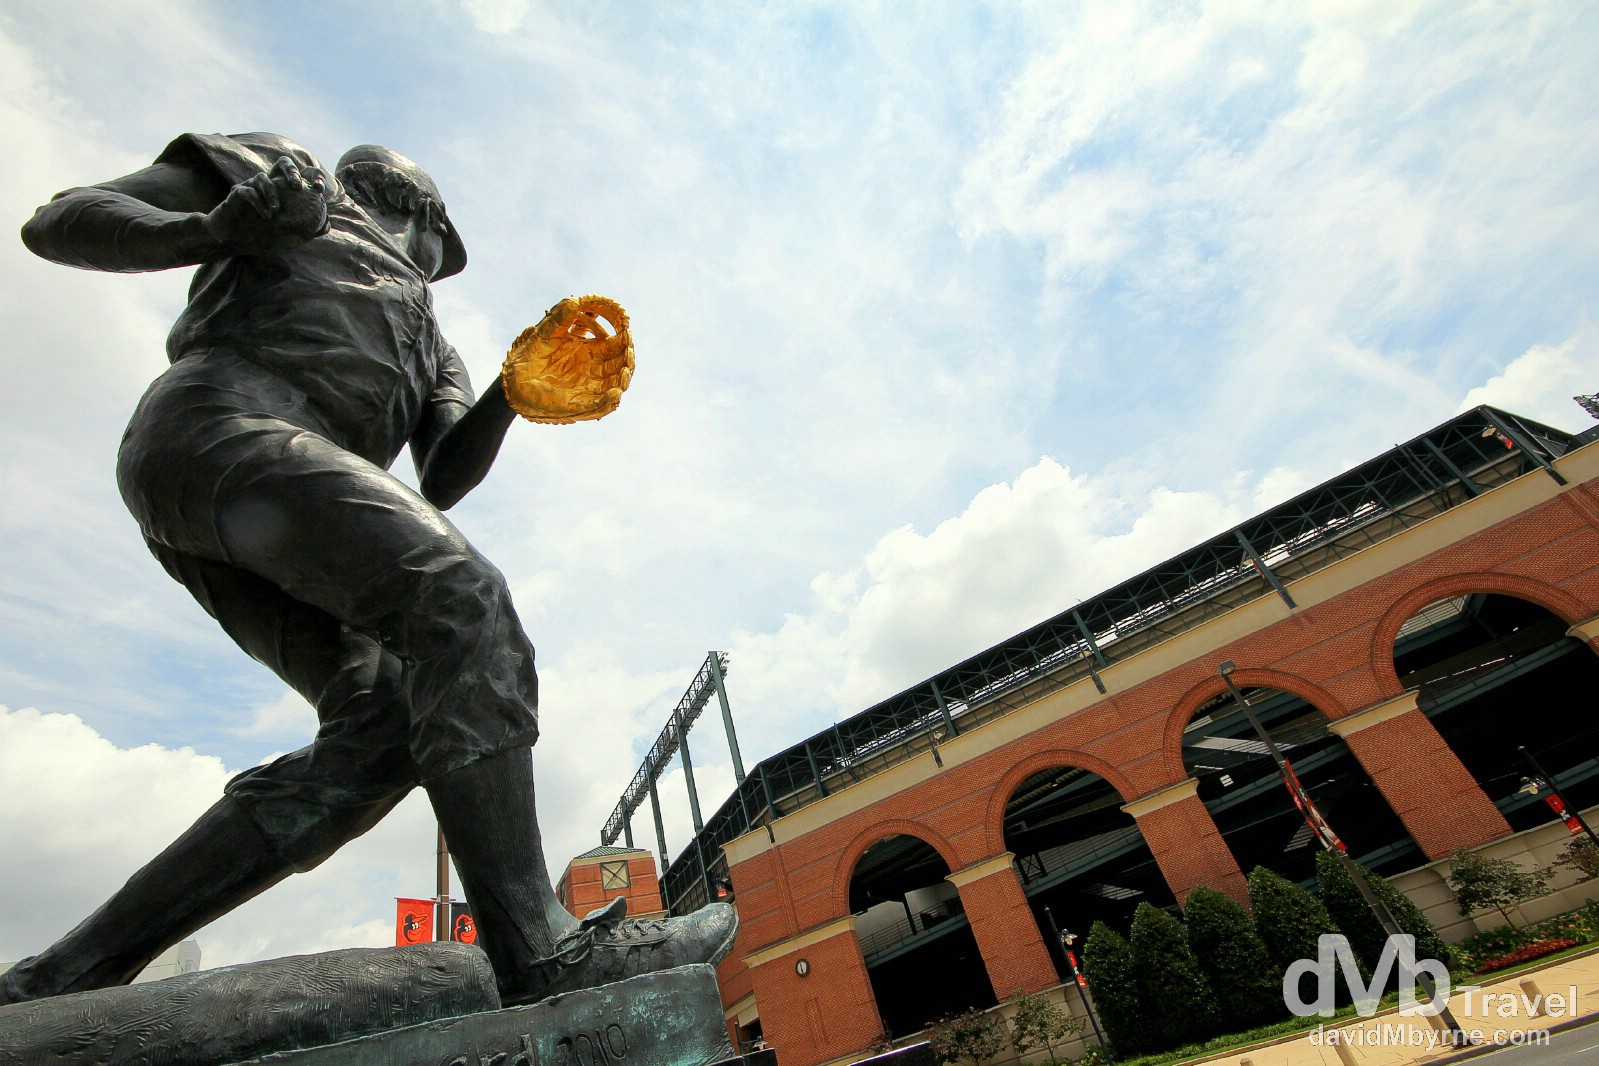 A statue outside of Oriole Park at Camden Yards of Brooks Robinson, a lifetime Oriole & widely regarded as the best third baseman to ever play baseball. Baltimore, Maryland, USA. July 11th 2103.